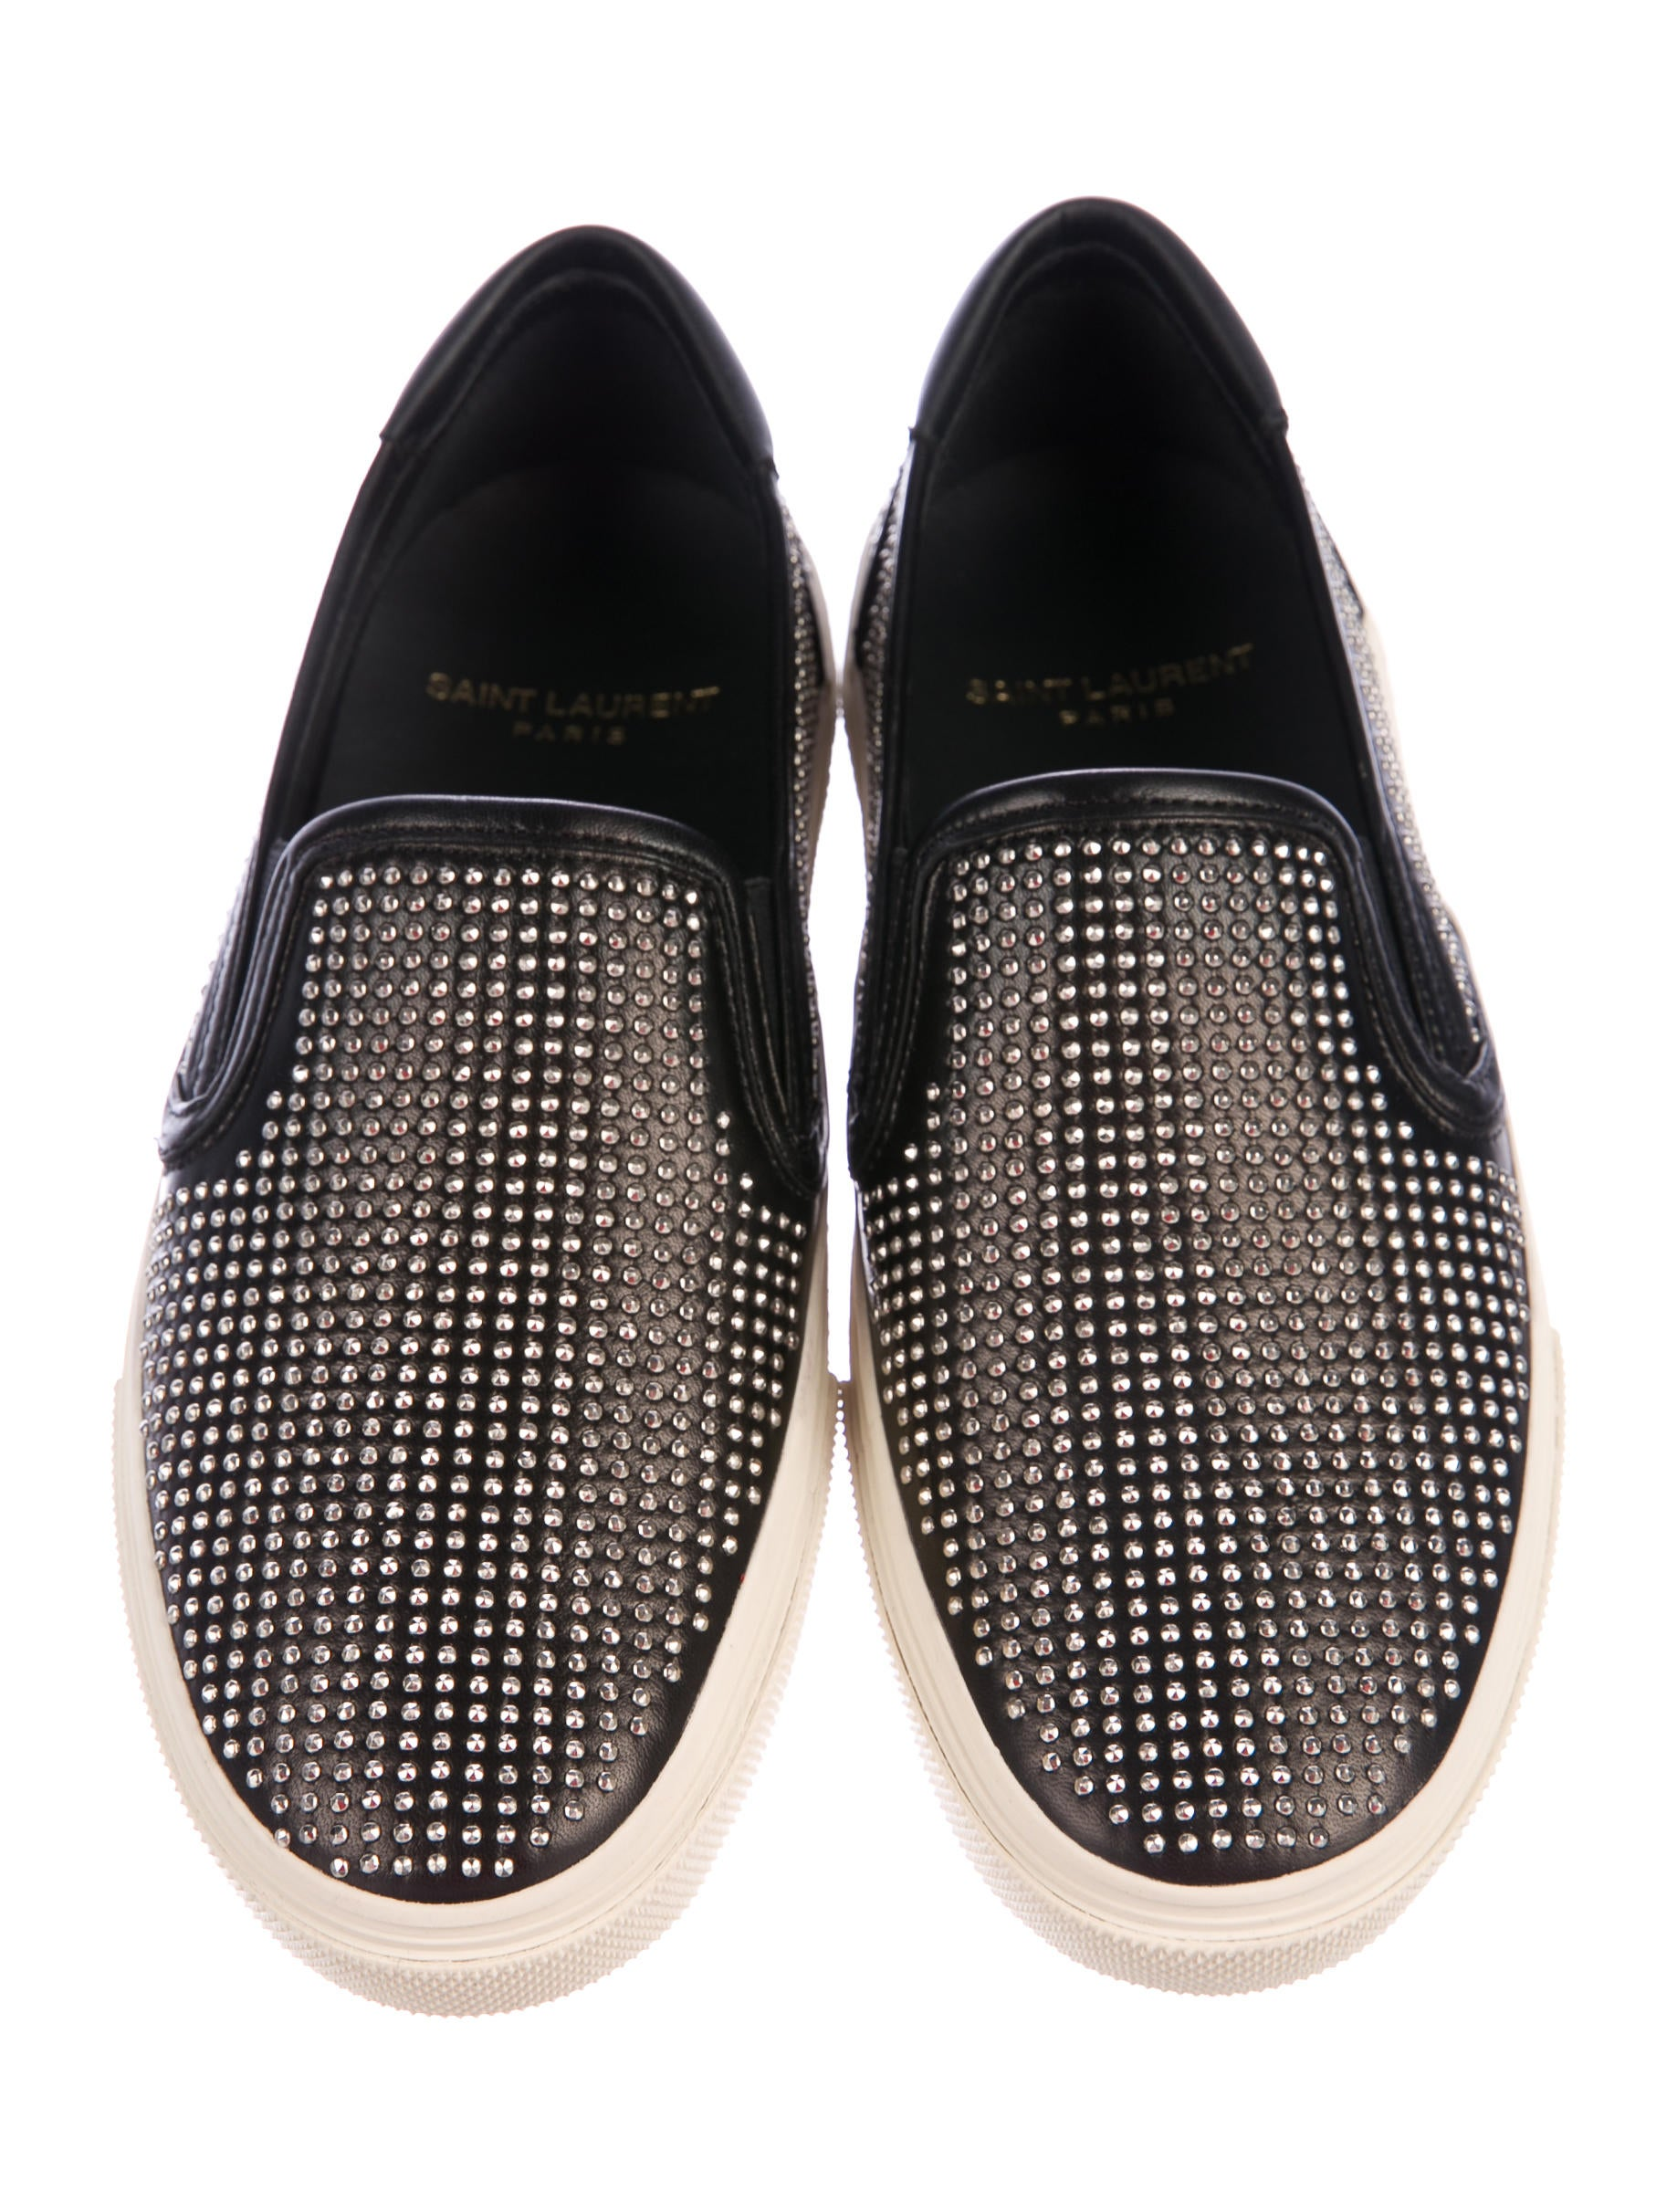 Saint Laurent Skate Studded Sneakers w/ Tags amazon footaction free shipping order IzaY6Uci